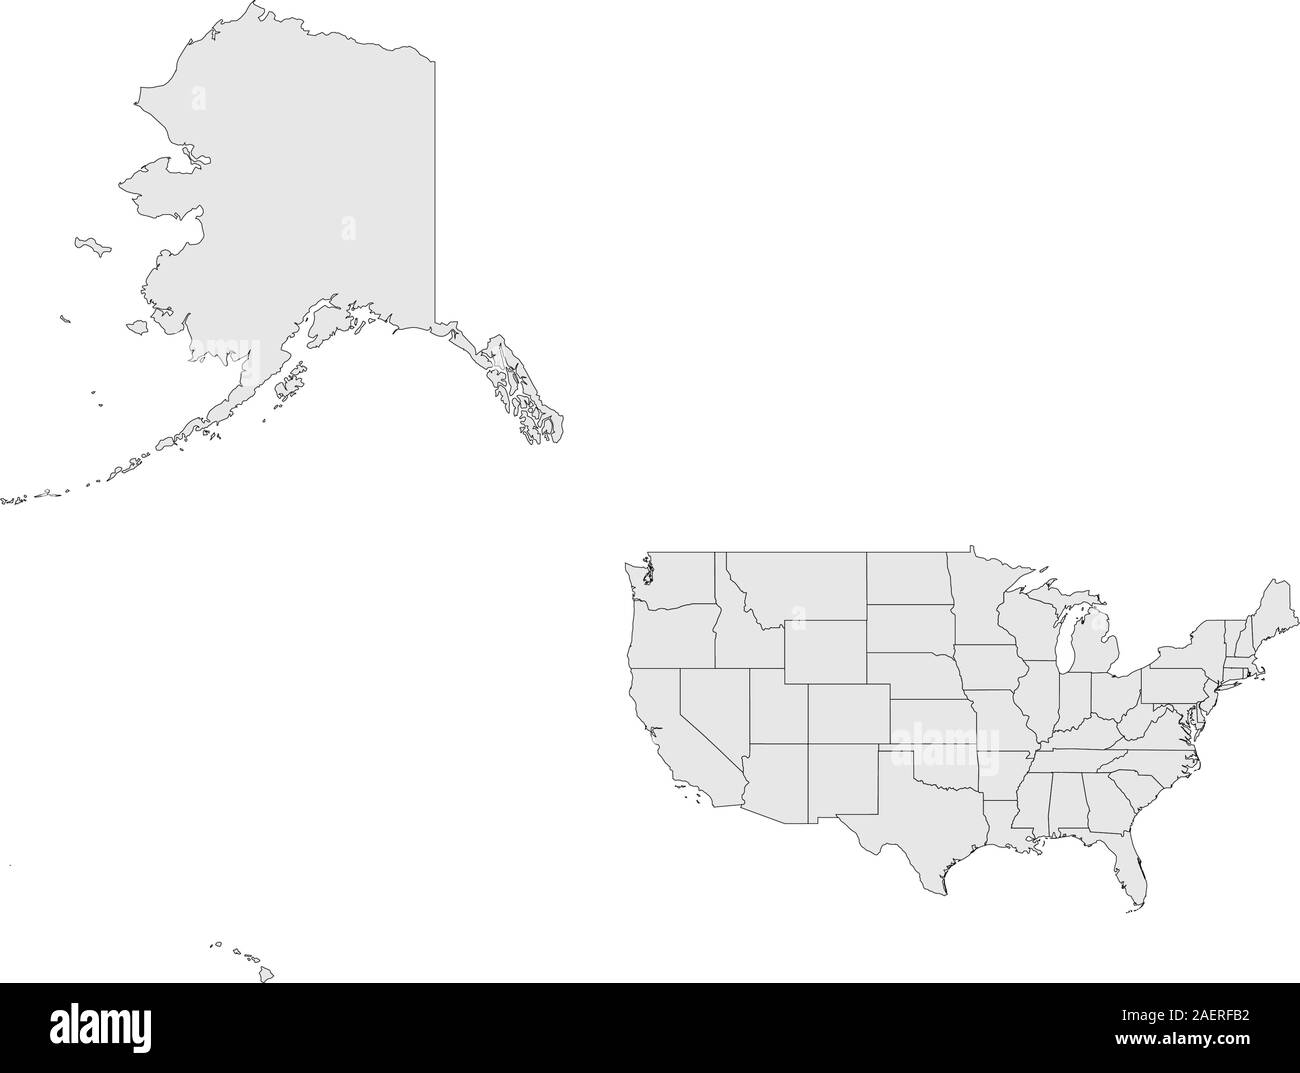 Picture of: United States Of America Alaska Hawaii Full Map Gray Background Stock Vector Image Art Alamy